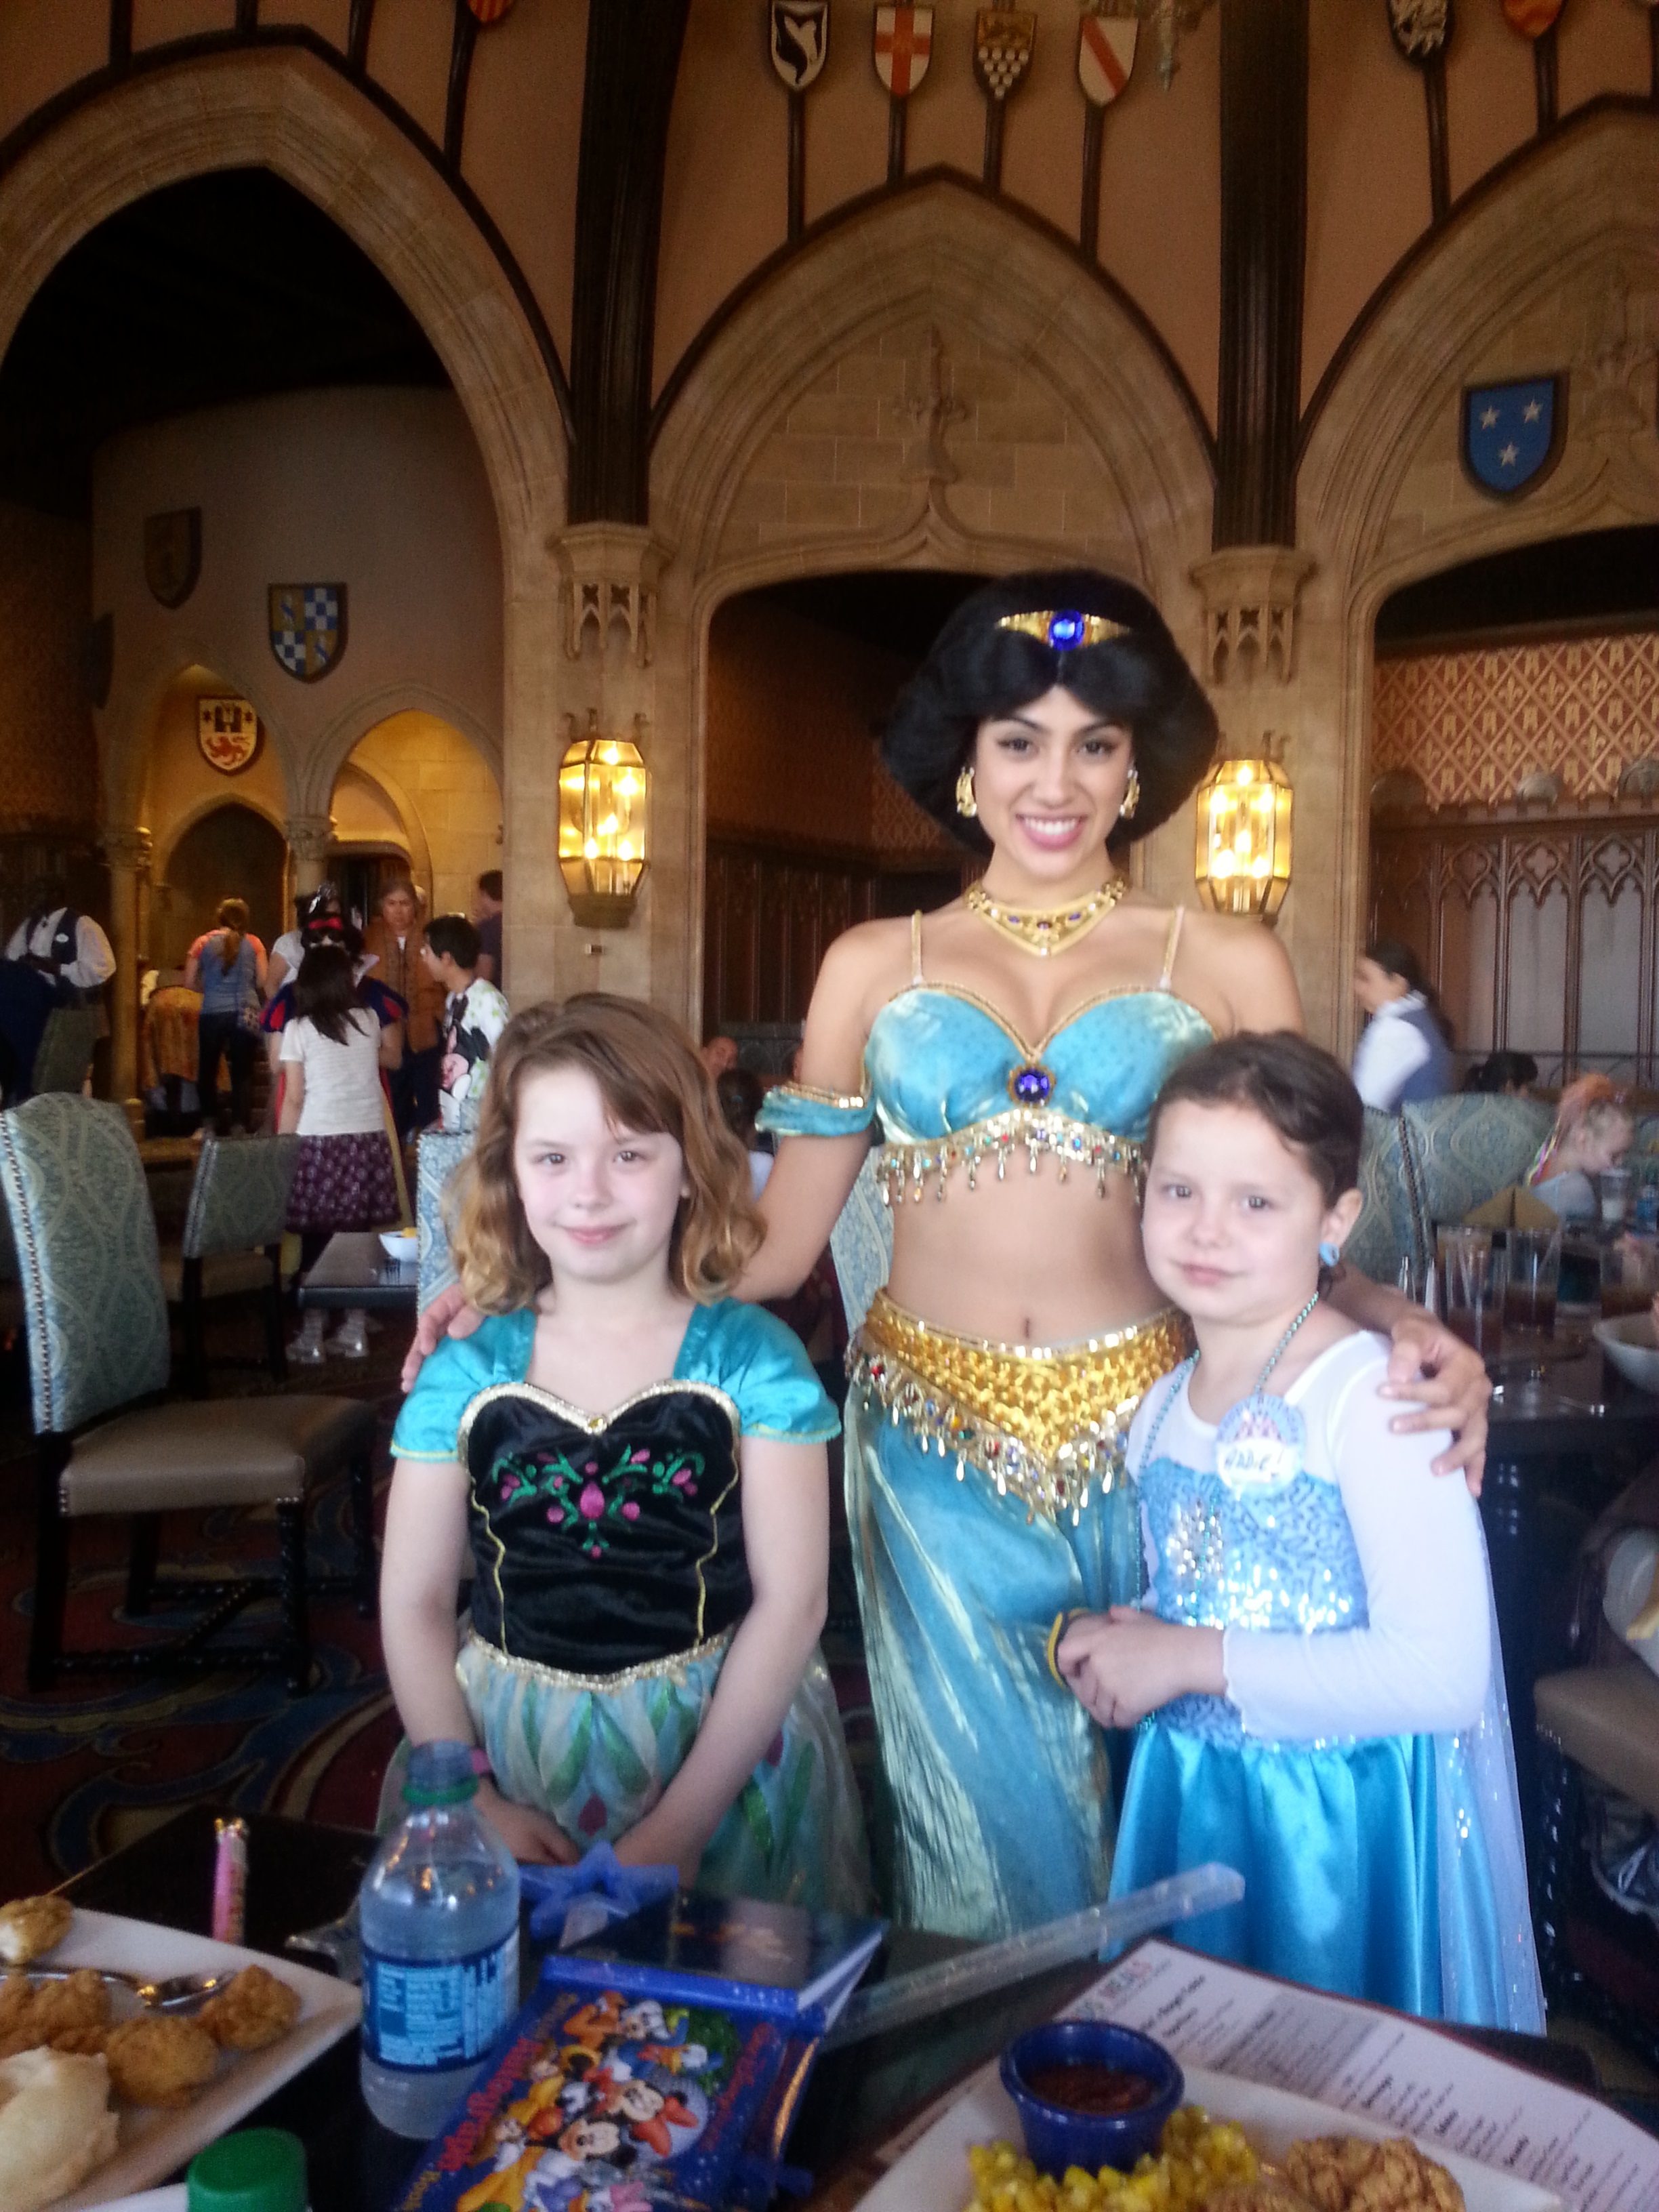 Overview Of Pirate And Princess Experiences At Disney World